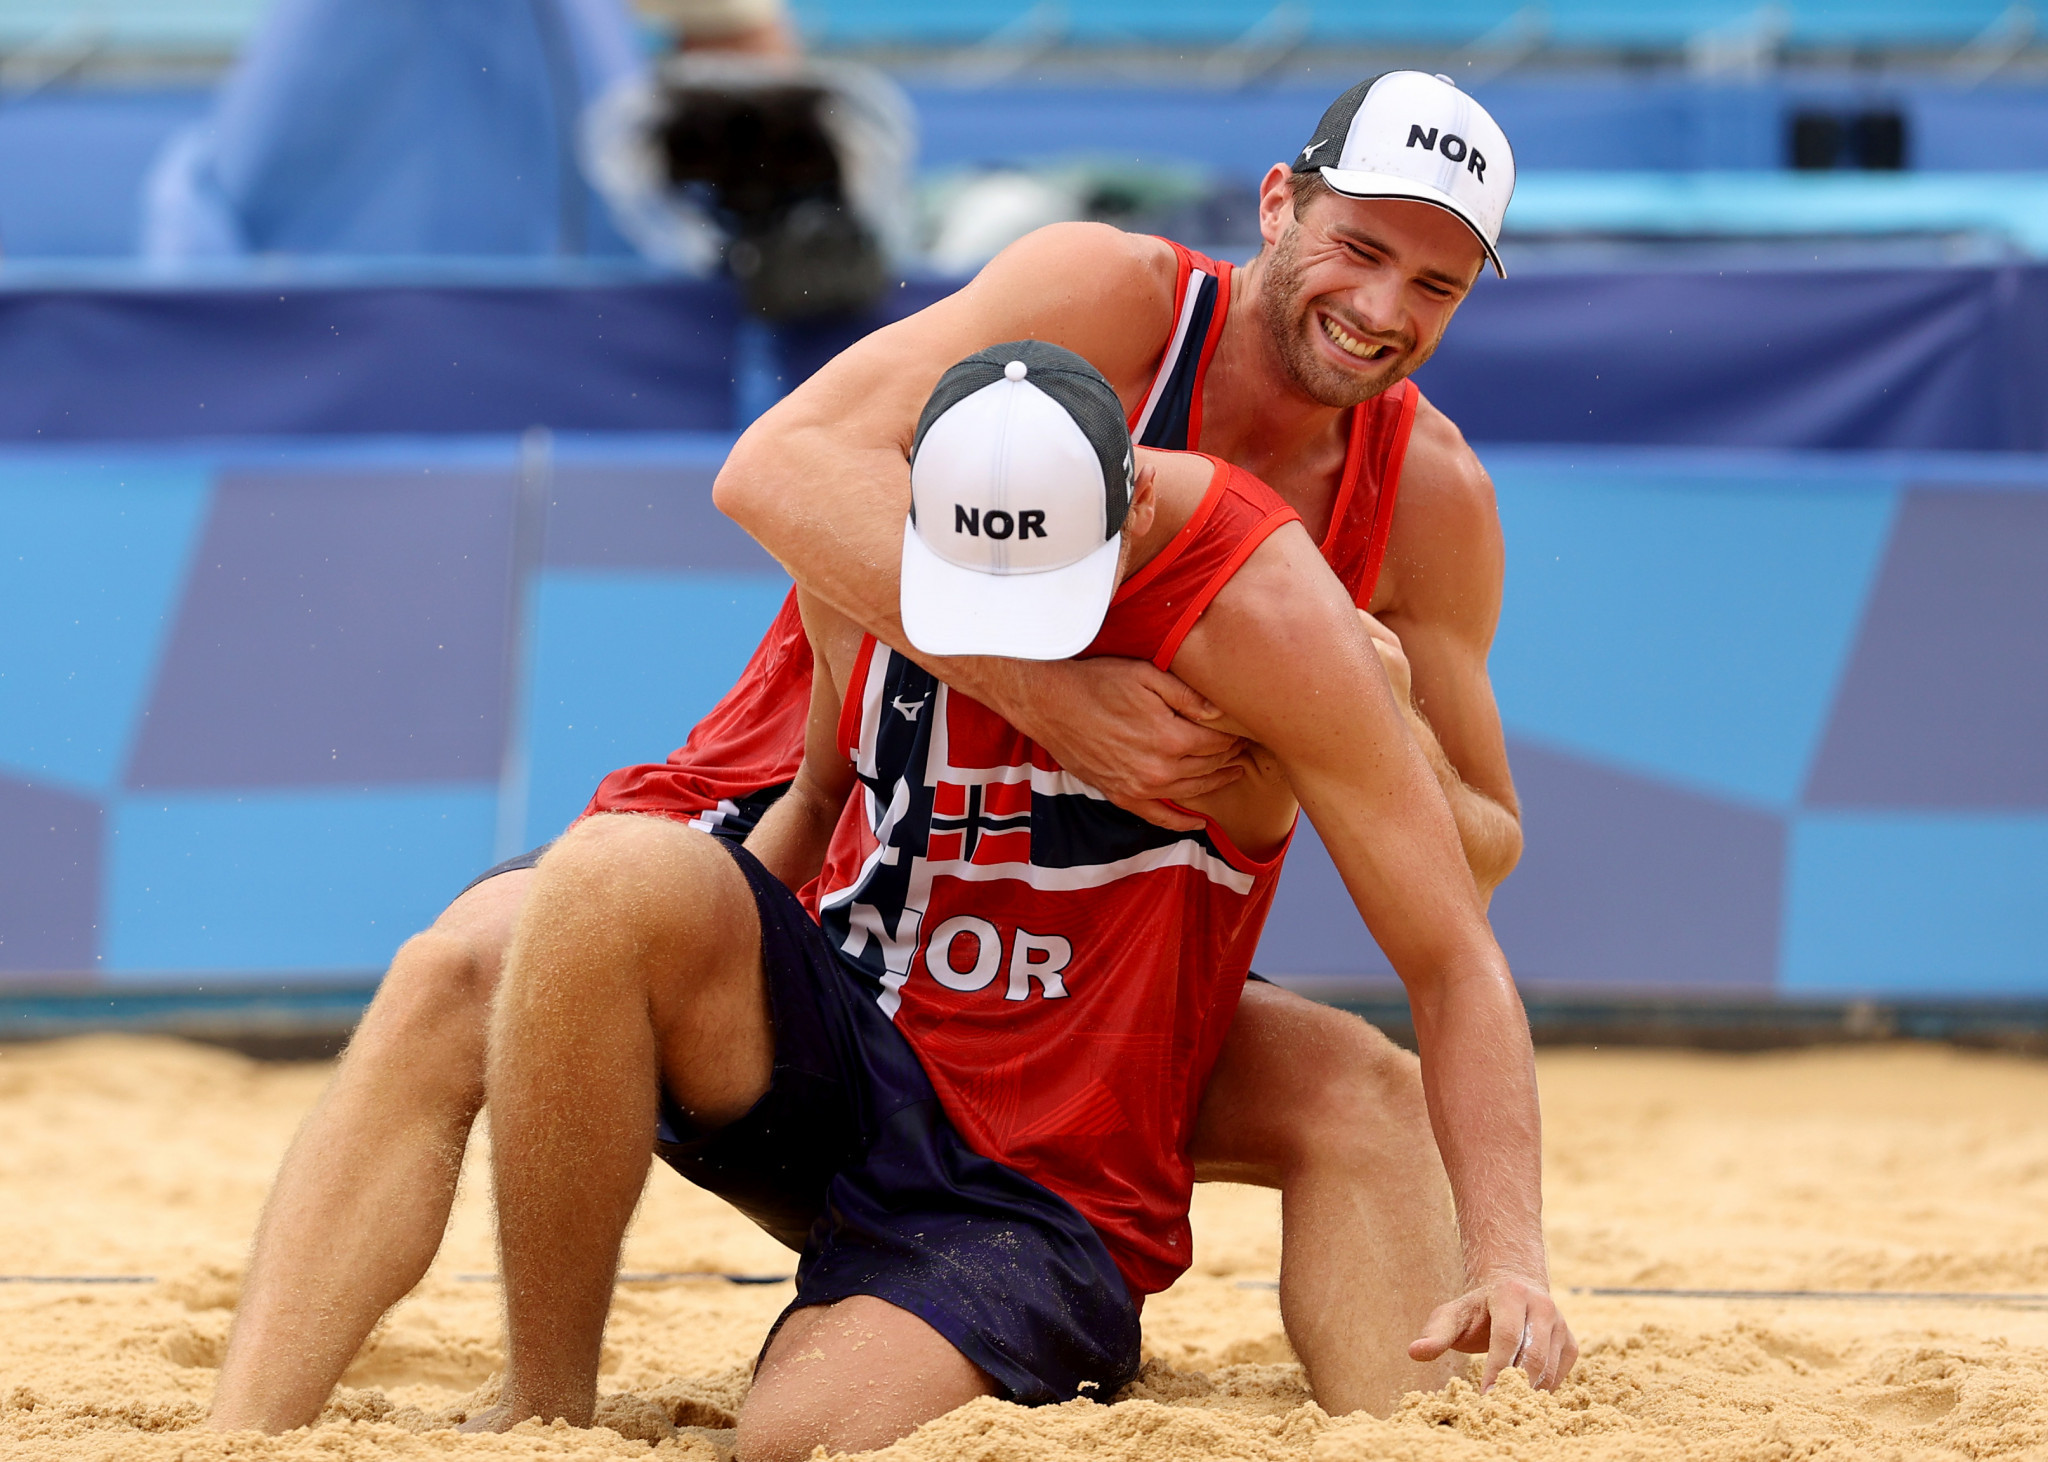 Olympic champions dominate FIVB Beach Volleyball World Tour Finals final